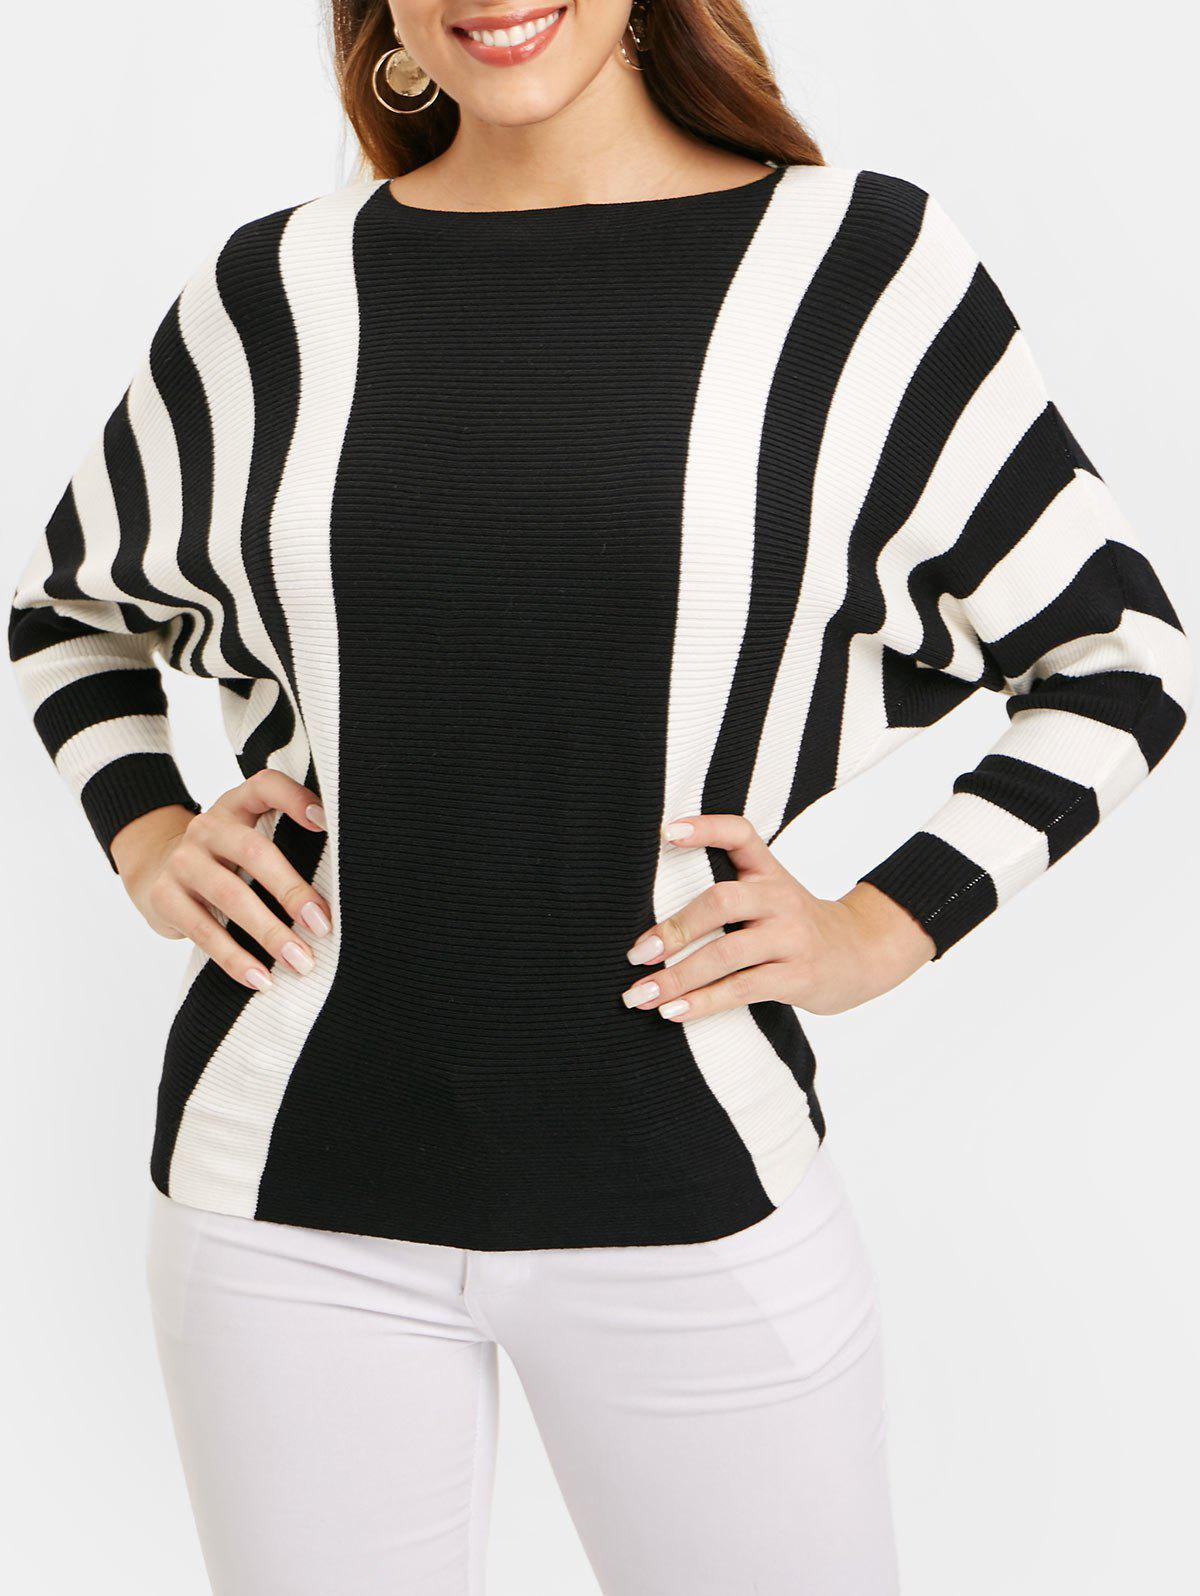 5e2a4951c0 42% OFF   2019 Ribbed Batwing Sleeve Striped Sweater